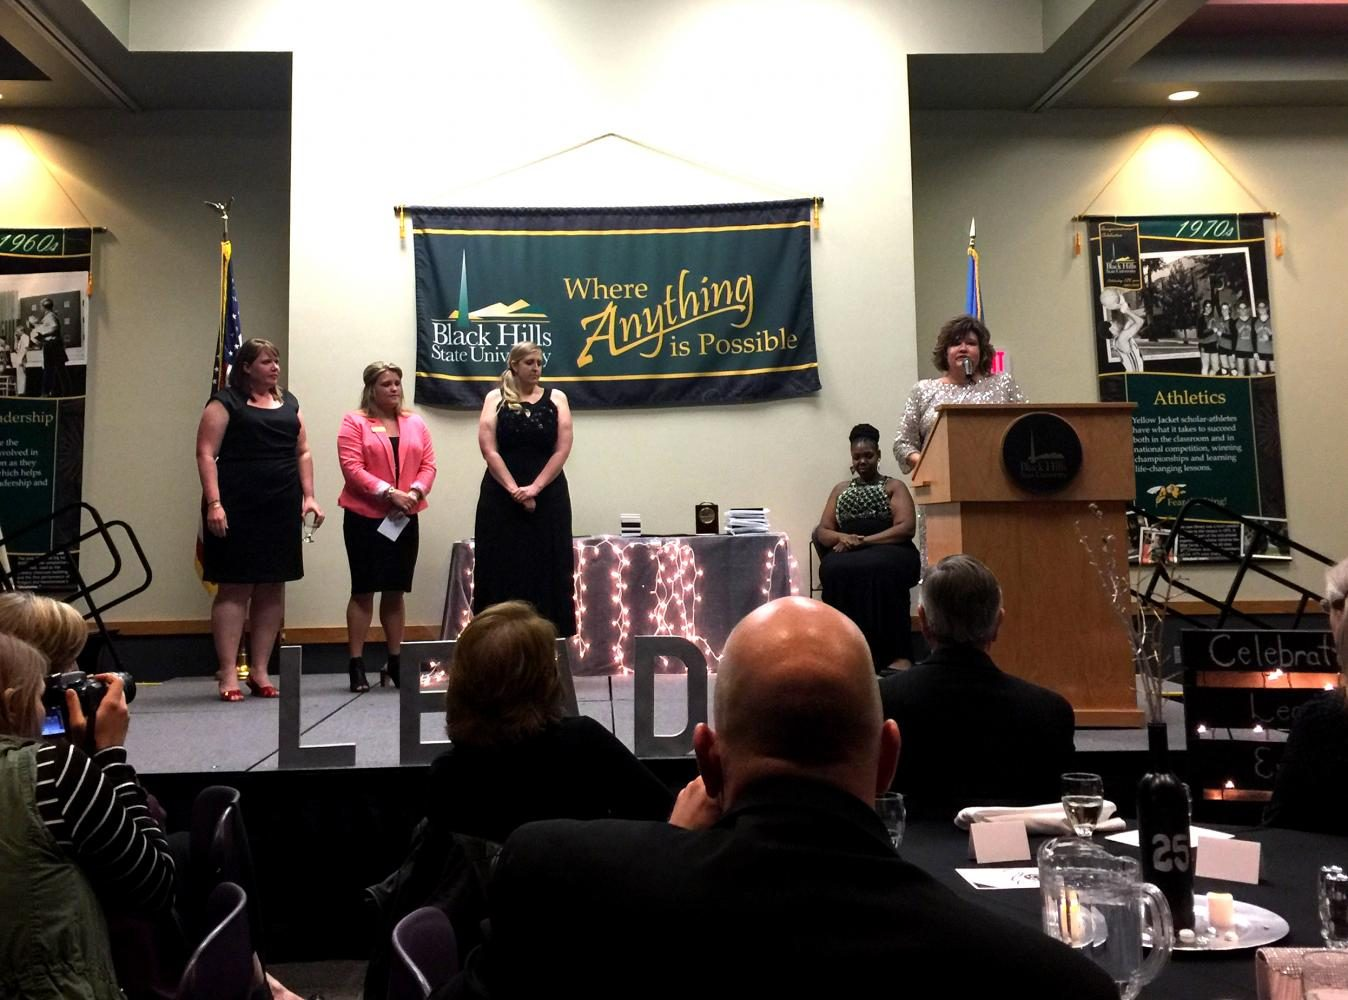 Student Leadership and Organization Honored at 25th Annual SVAC